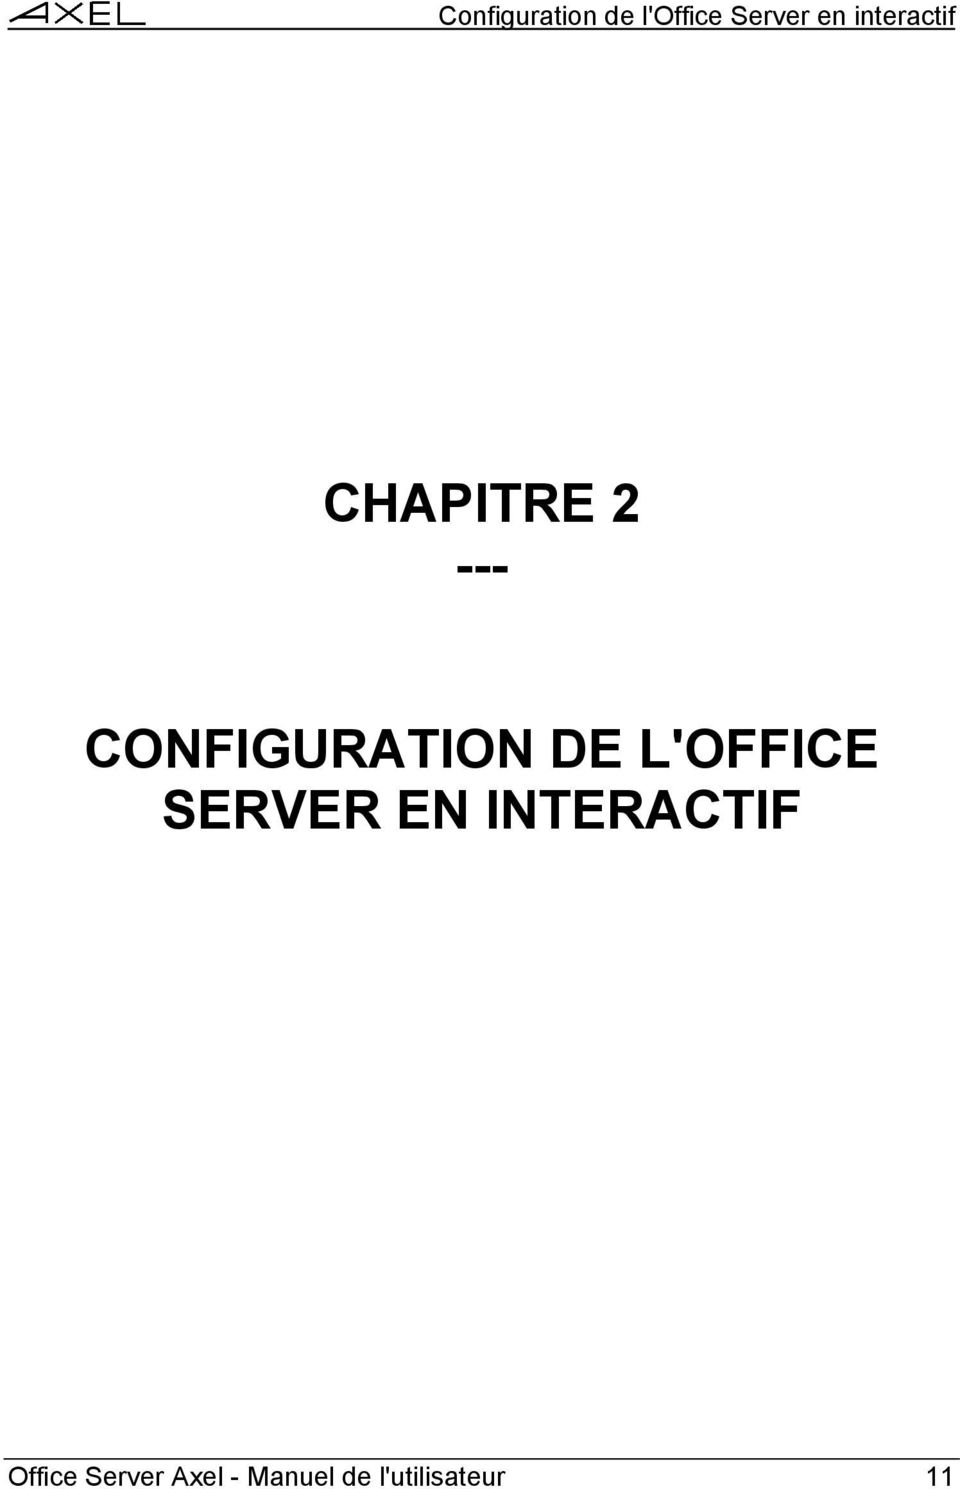 CONFIGURATION DE L'OFFICE SERVER EN